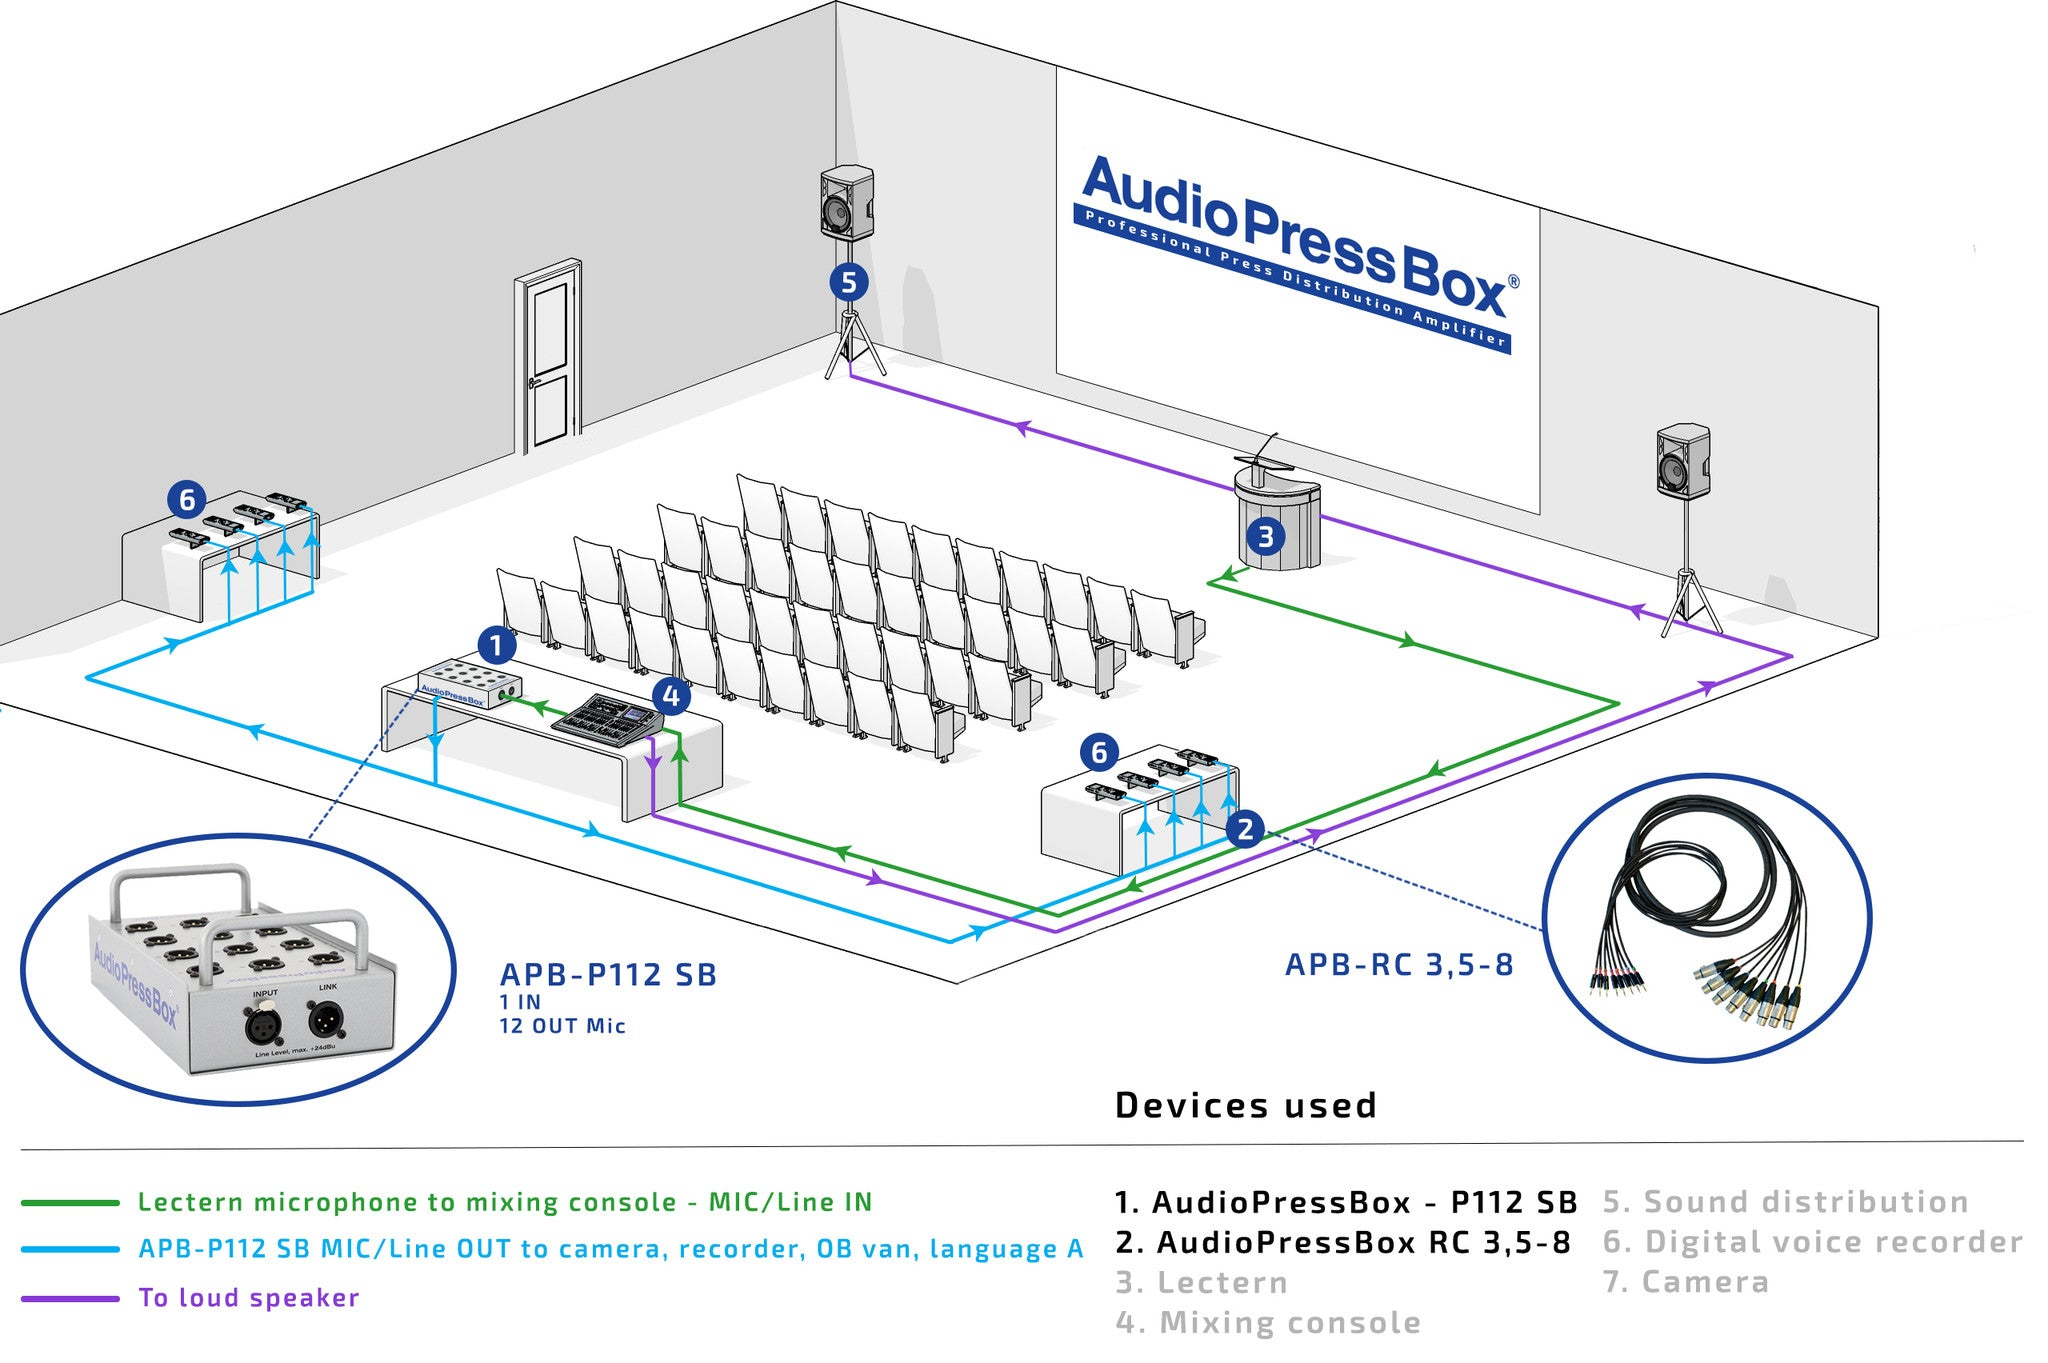 AudioPressBox, Mult Box, PressBox, Mult Box, Press Patch Box, Pressesplitter, APB-P122 SB